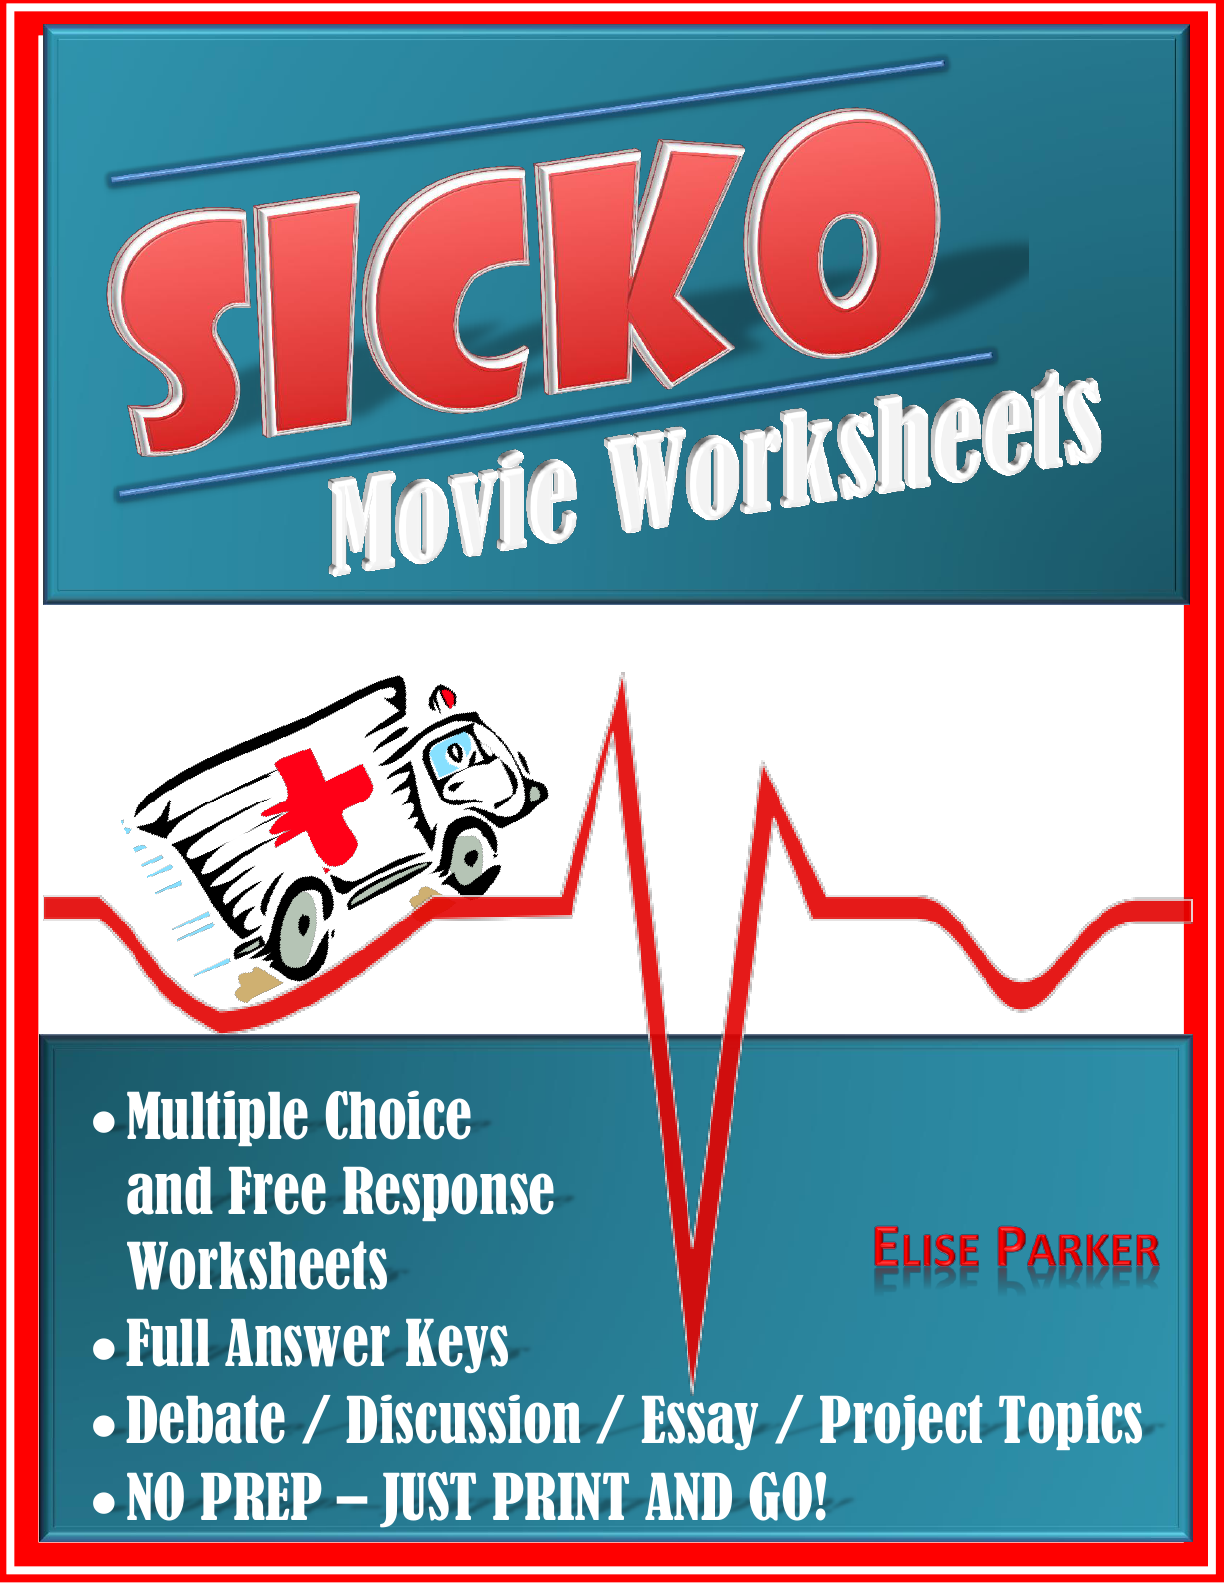 Sicko Worksheets Movie Guide And Debate Essay Project